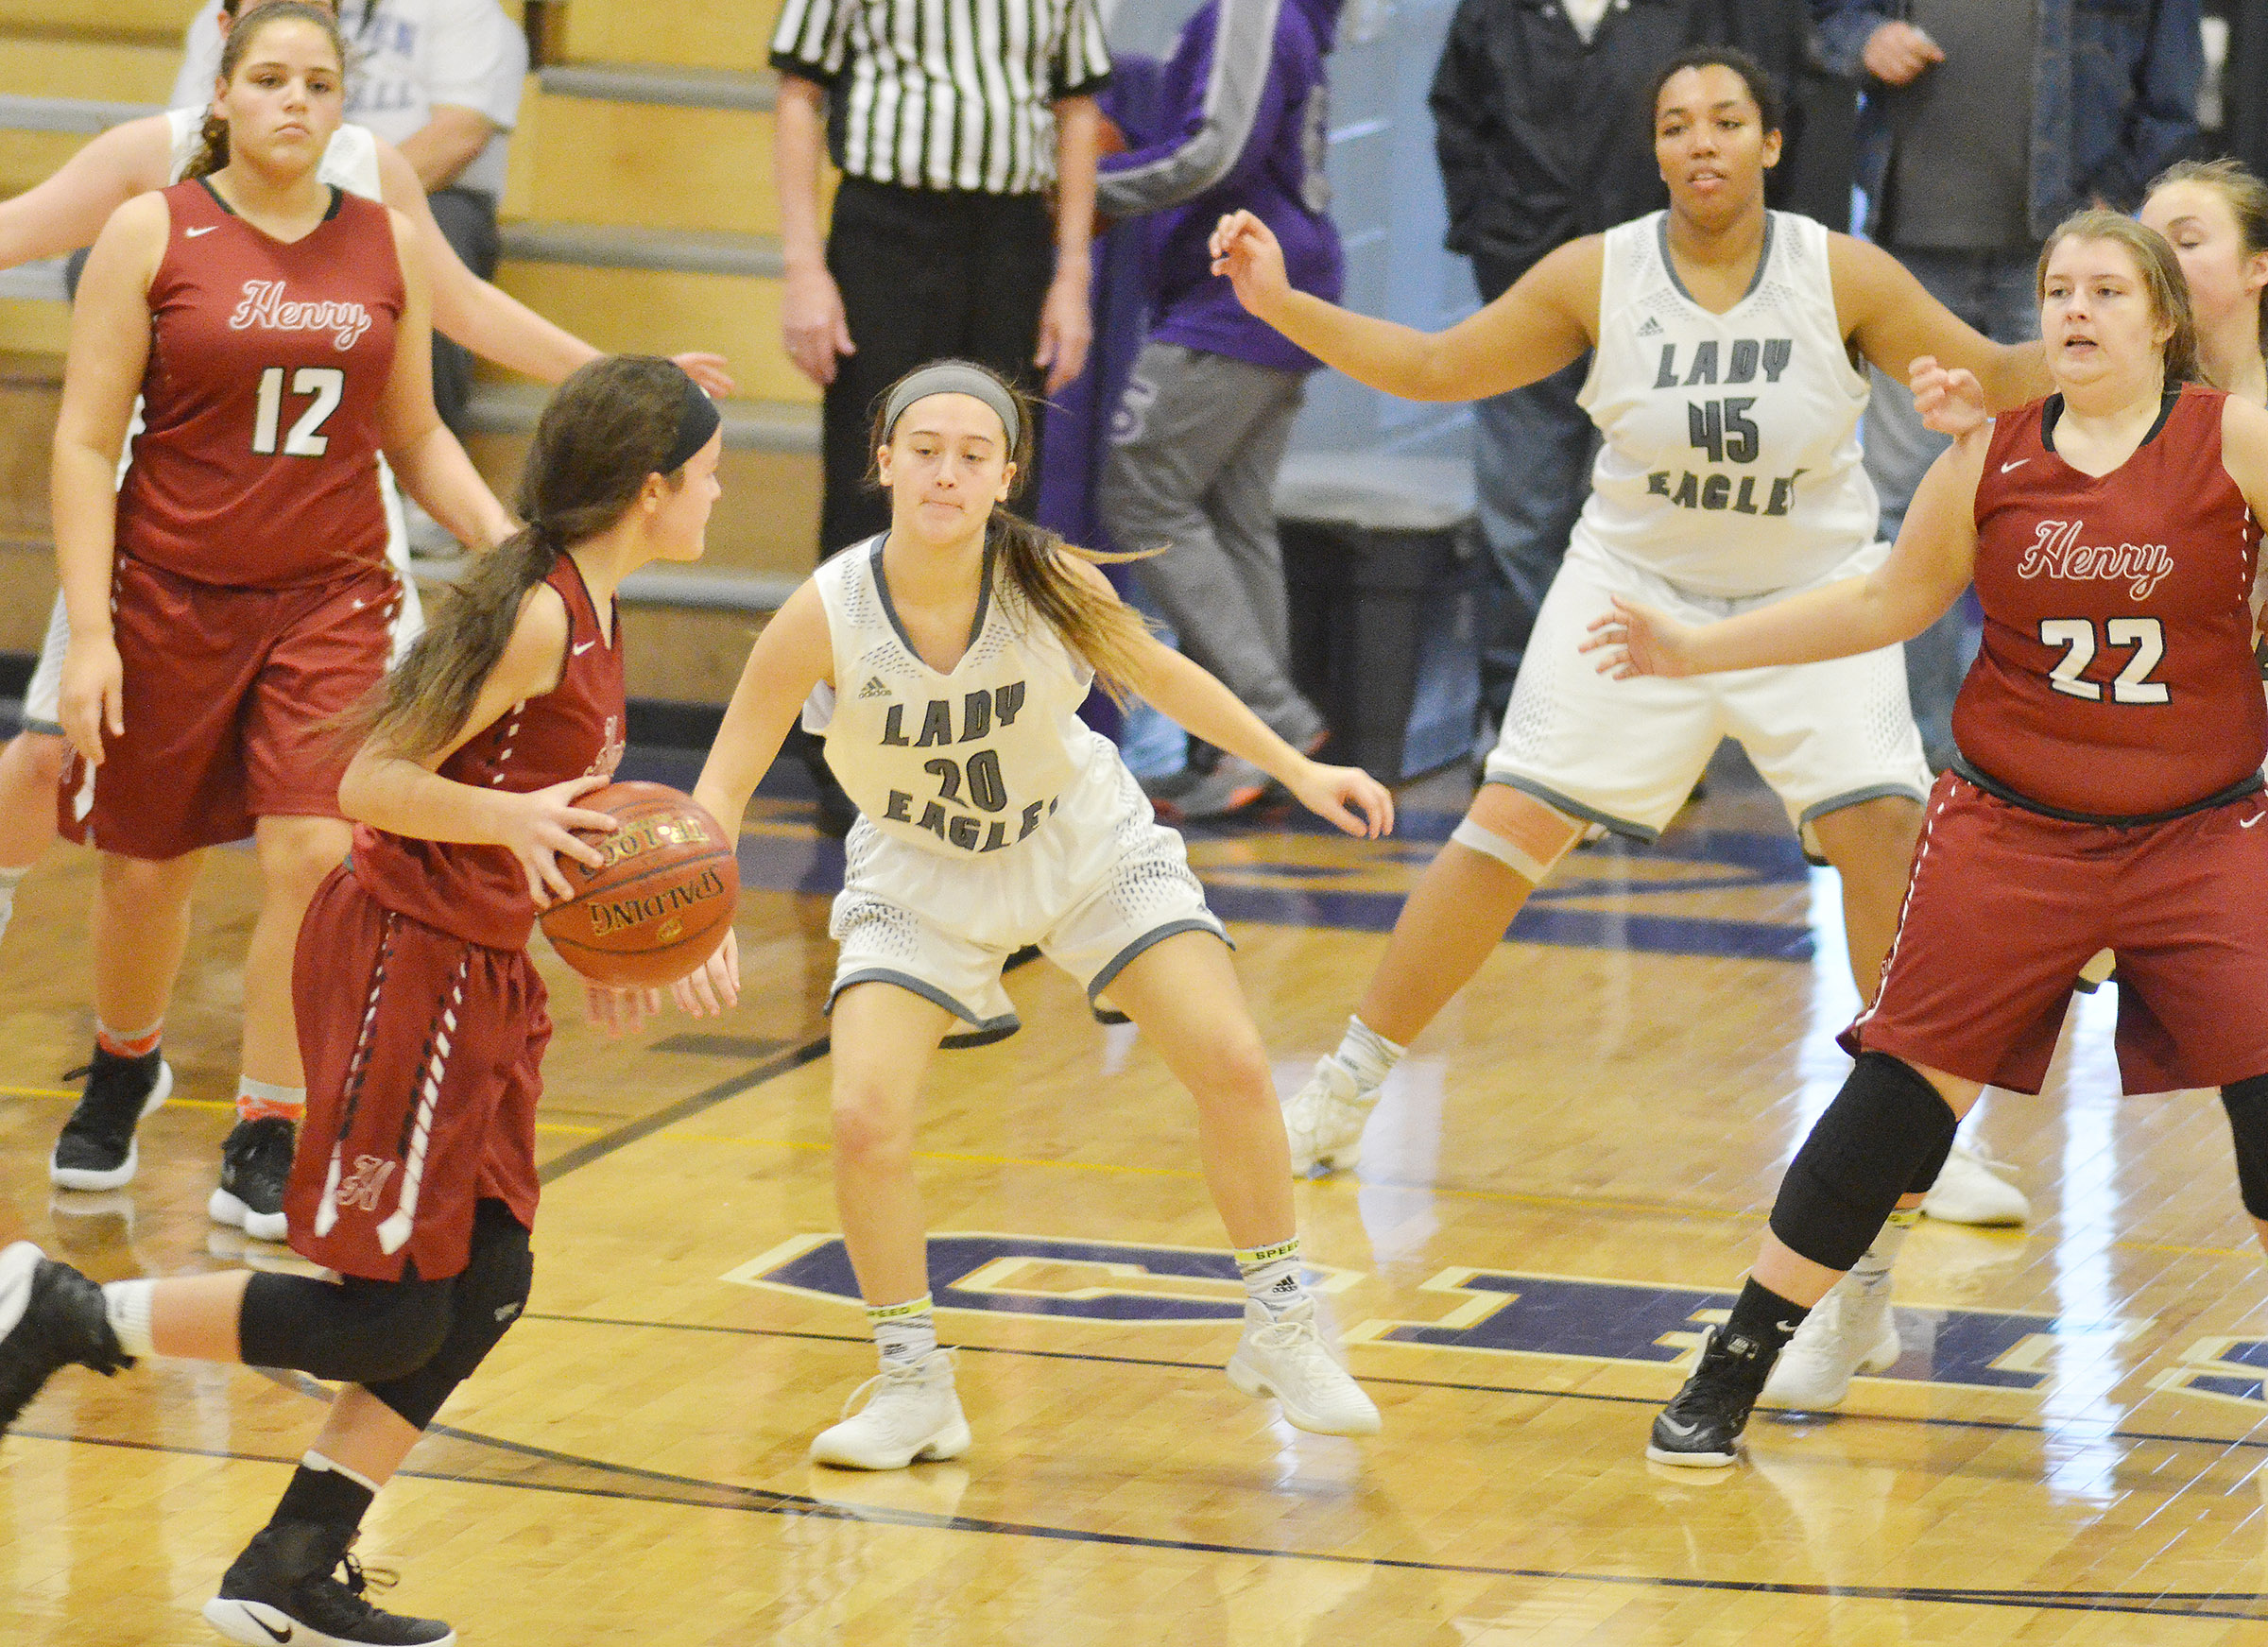 CHS sophomore Bailey Thompson, at left, and junior Malaya Hoskins play defense.